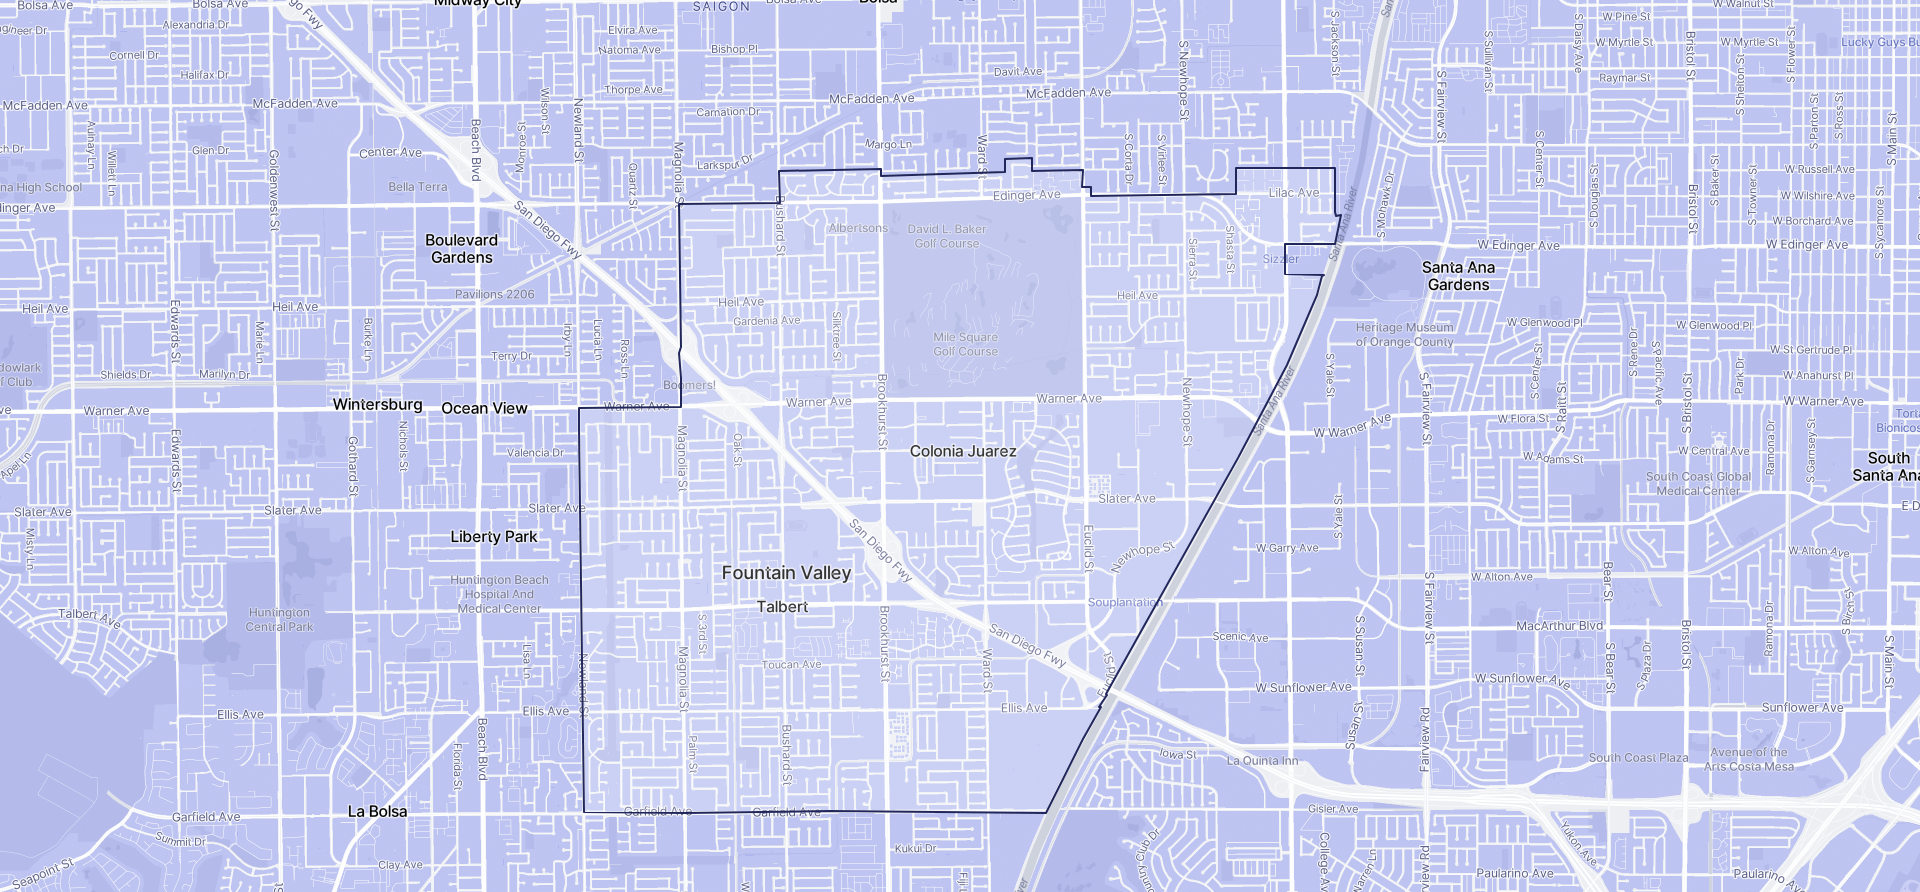 Image of Fountain Valley boundaries on a map.